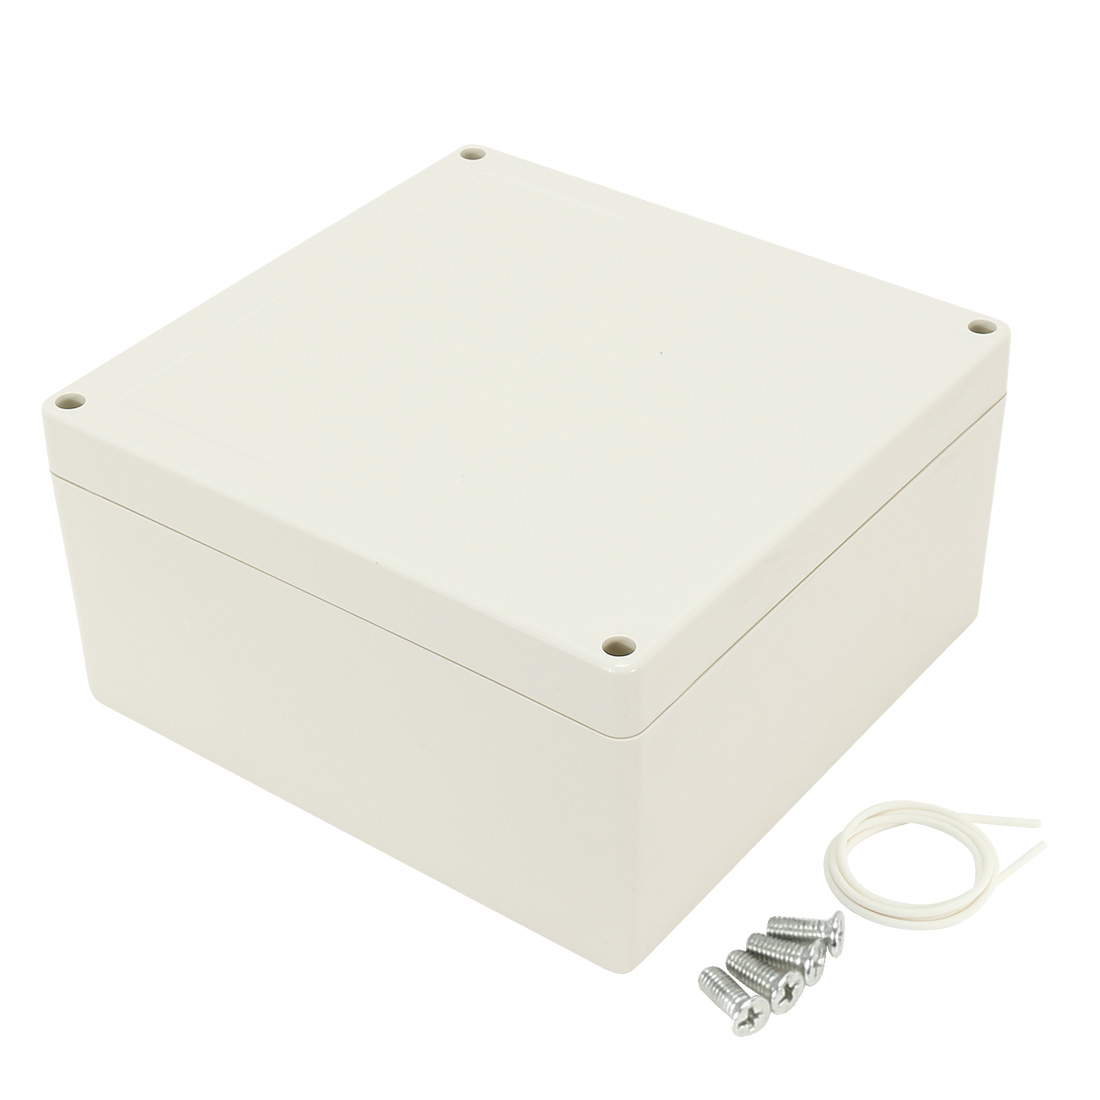 "7.56""x7.4""x3.93""(192mmx188mmx100mm) ABS Junction Box Universal Electric Project Enclosure"